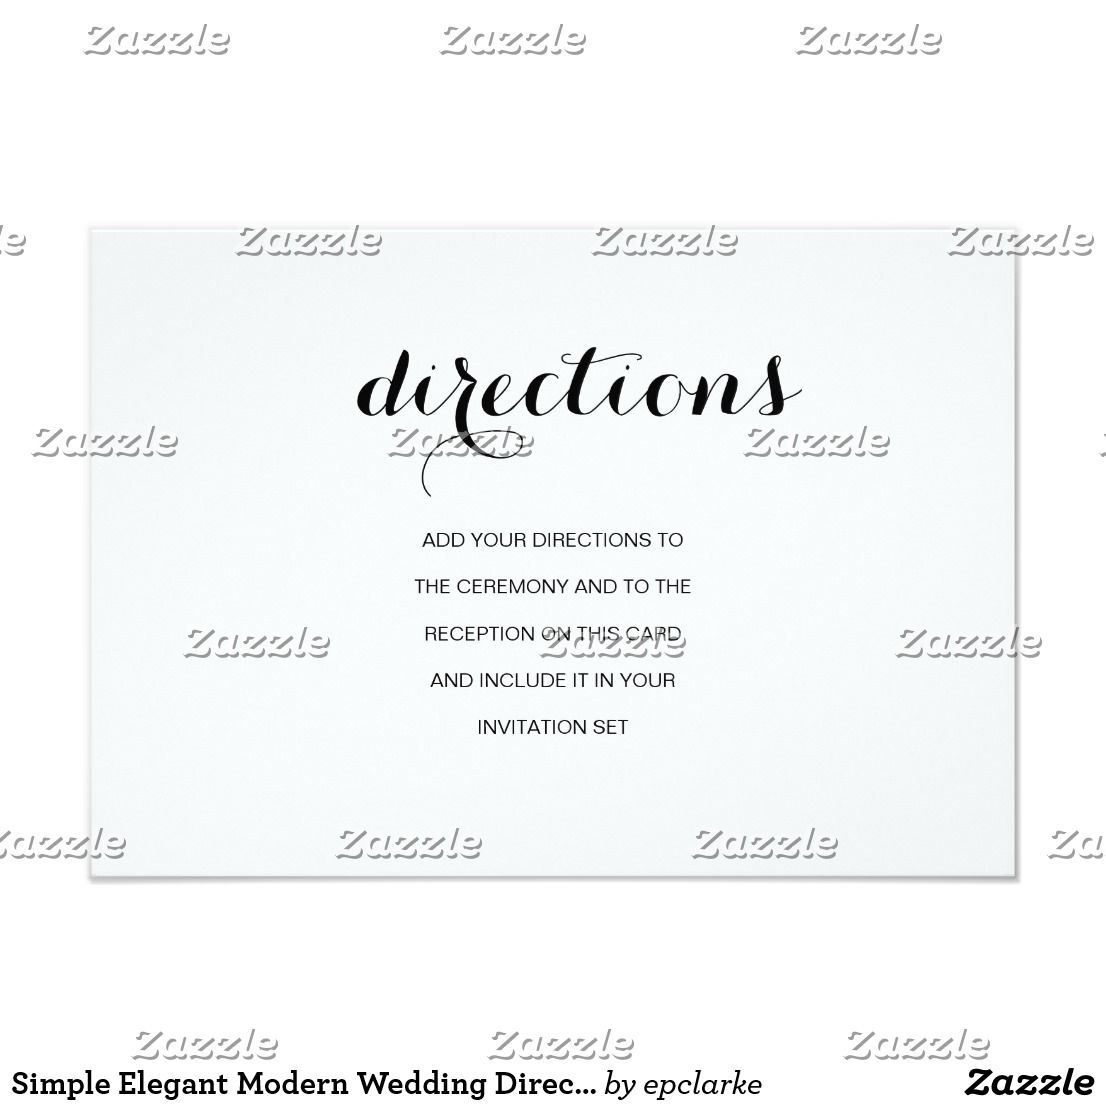 Simple Elegant Modern Wedding Directions Card | Elegant Wedding ...